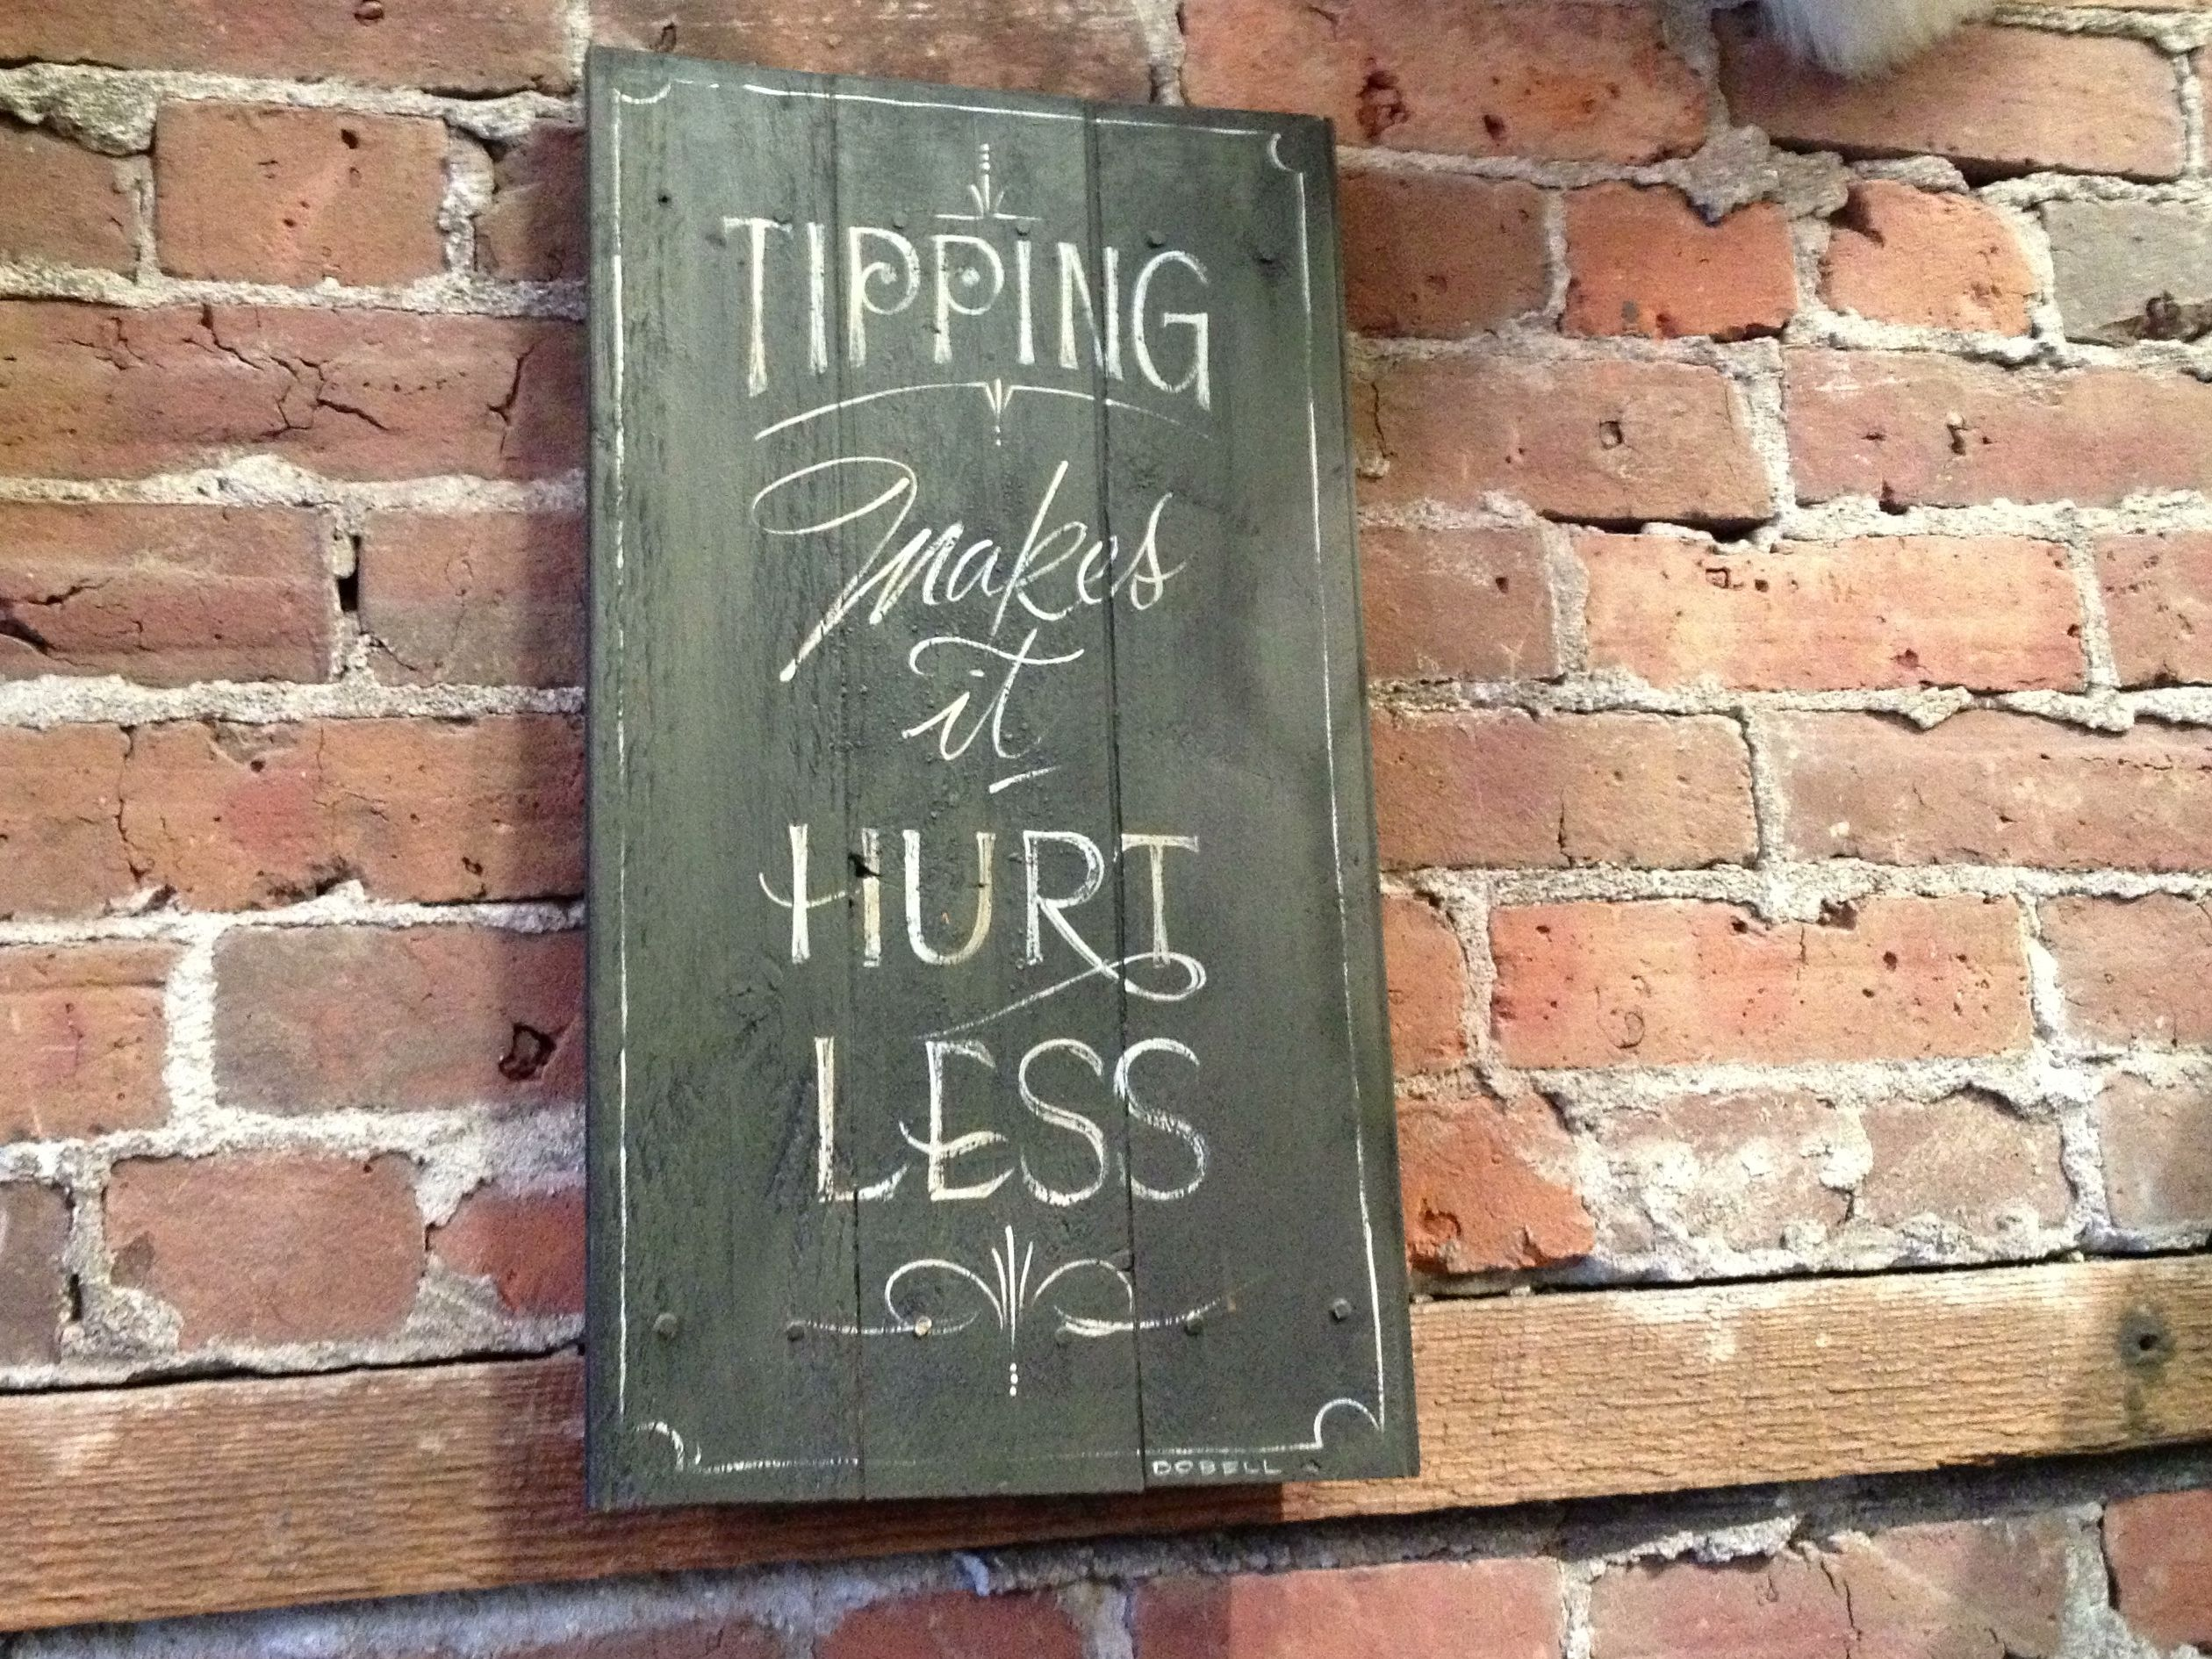 Another funny sign at my favourite tattoo shop gastown